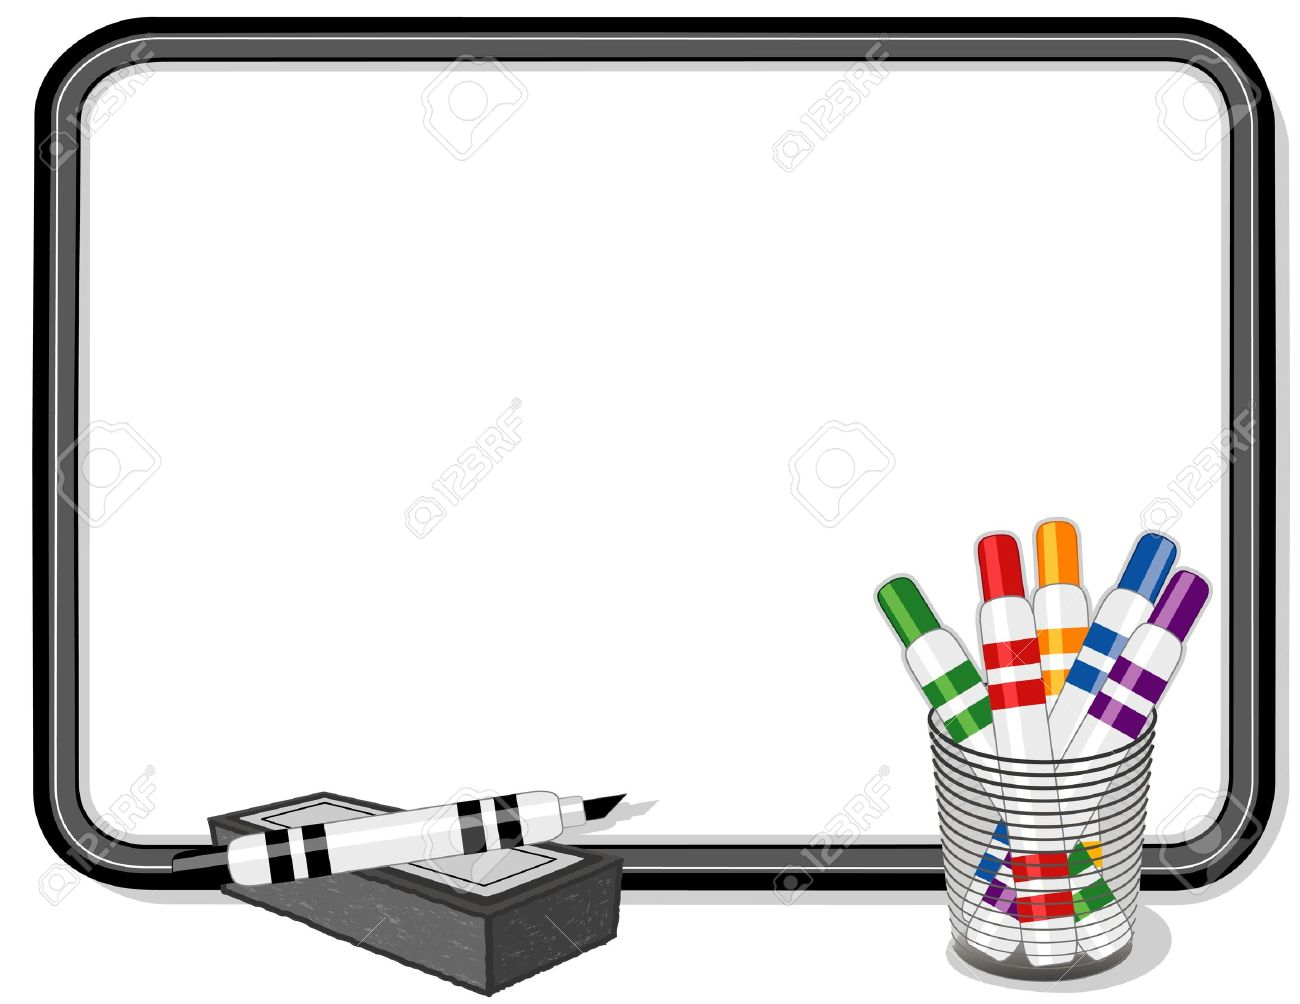 whiteboard with multicolor marker pens royalty free cliparts